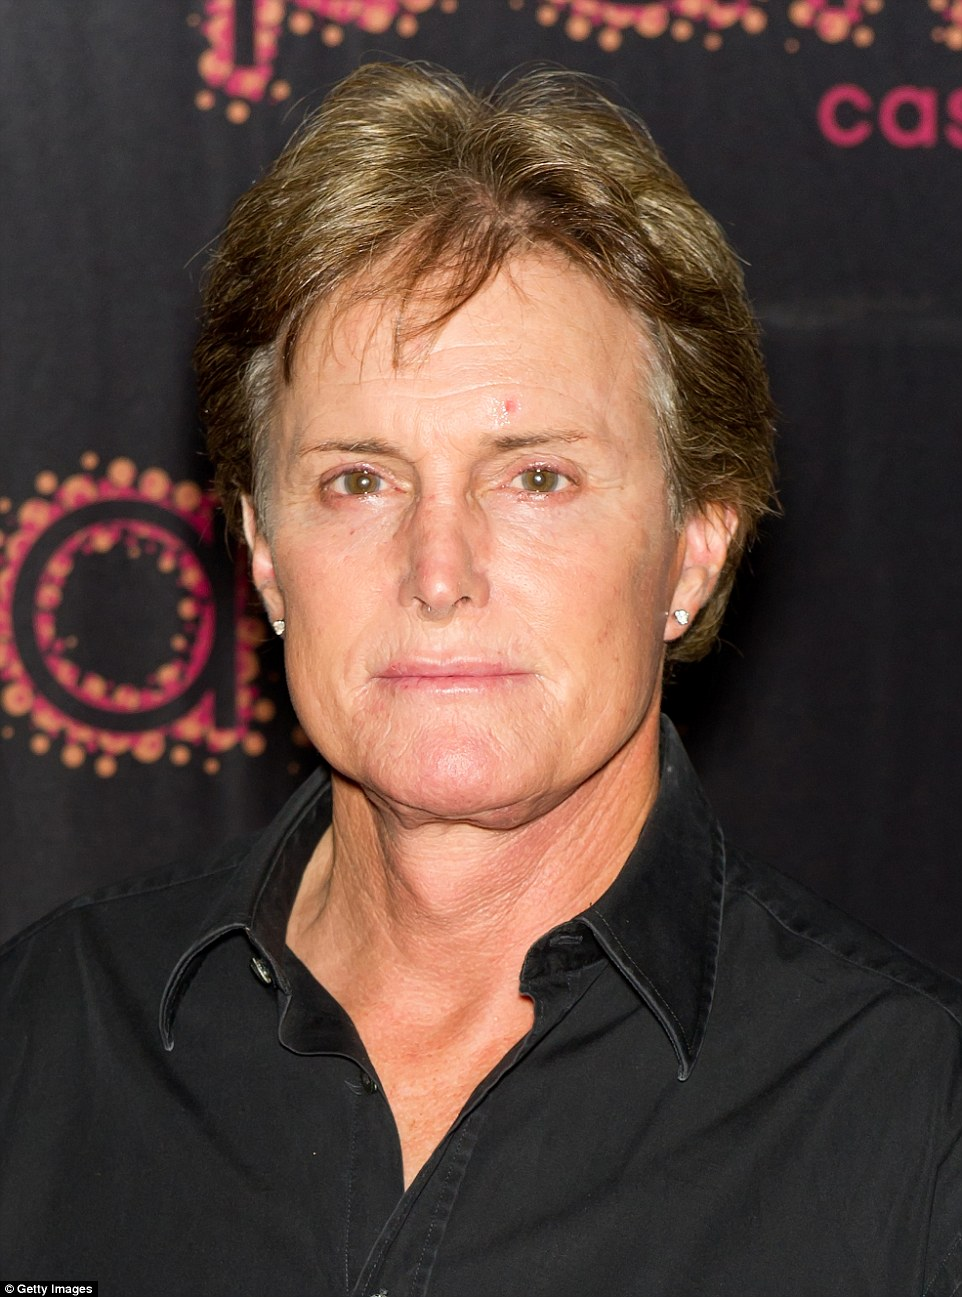 Ear-ily feminine: Bruce made headlines when he pierced both of his ears in 2011; in 2012 (pictured here), he upgraded from simple gold studs to flashy diamonds